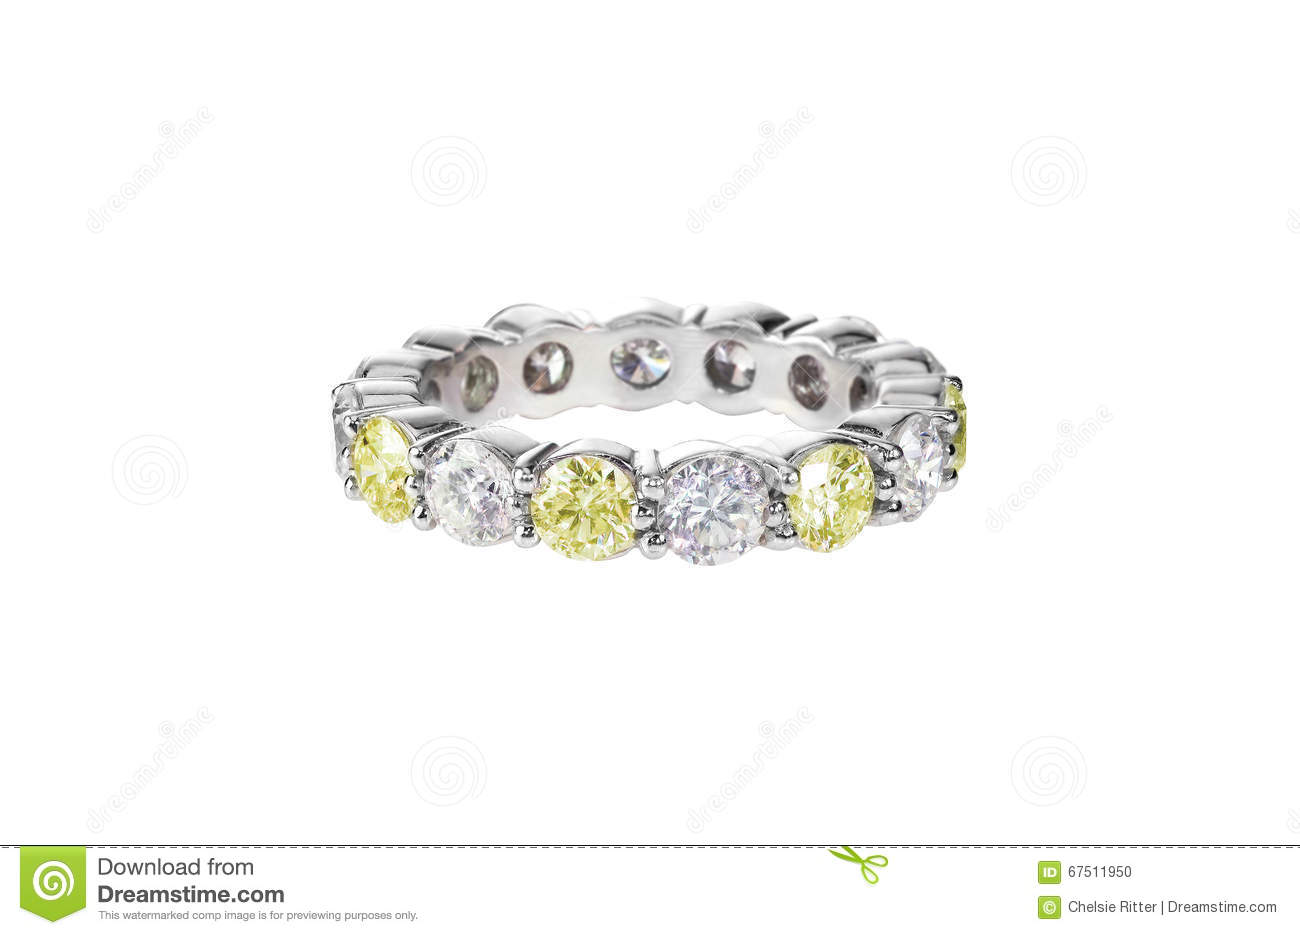 heidi topic canary klum engagement diamond ring rings wedding